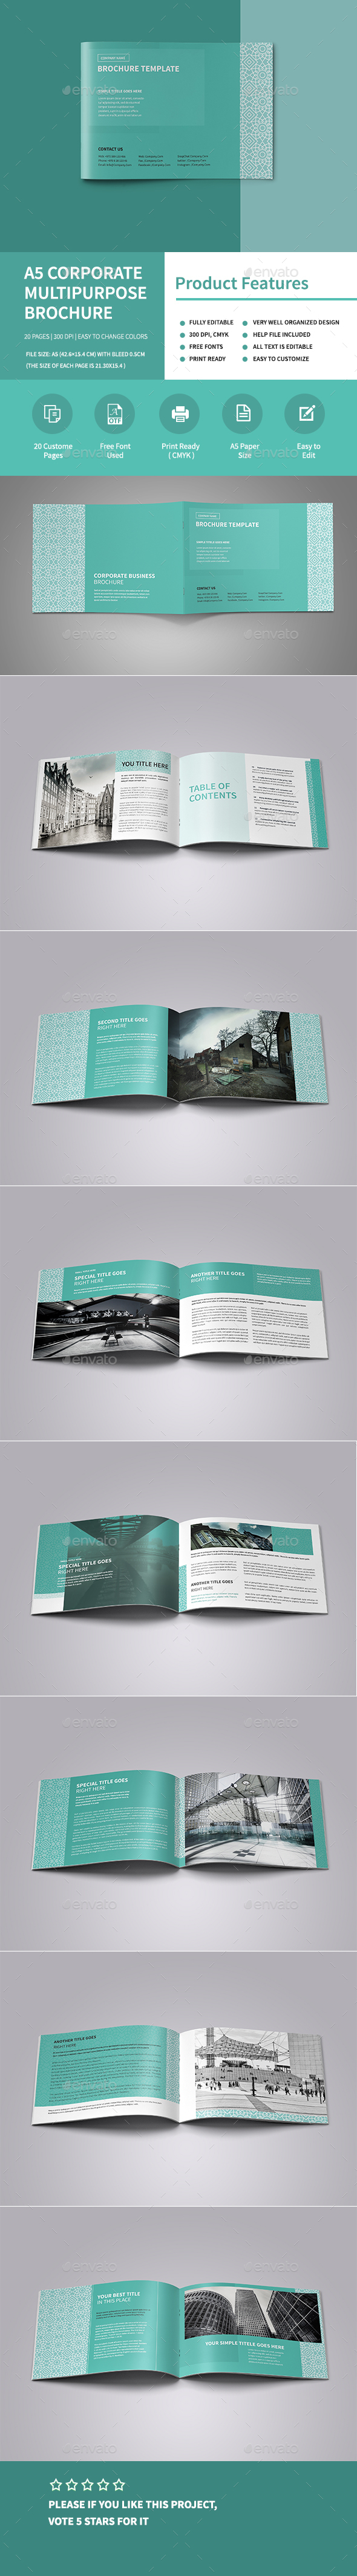 A5 Corporate Multipurpose Brochure - Corporate Brochures